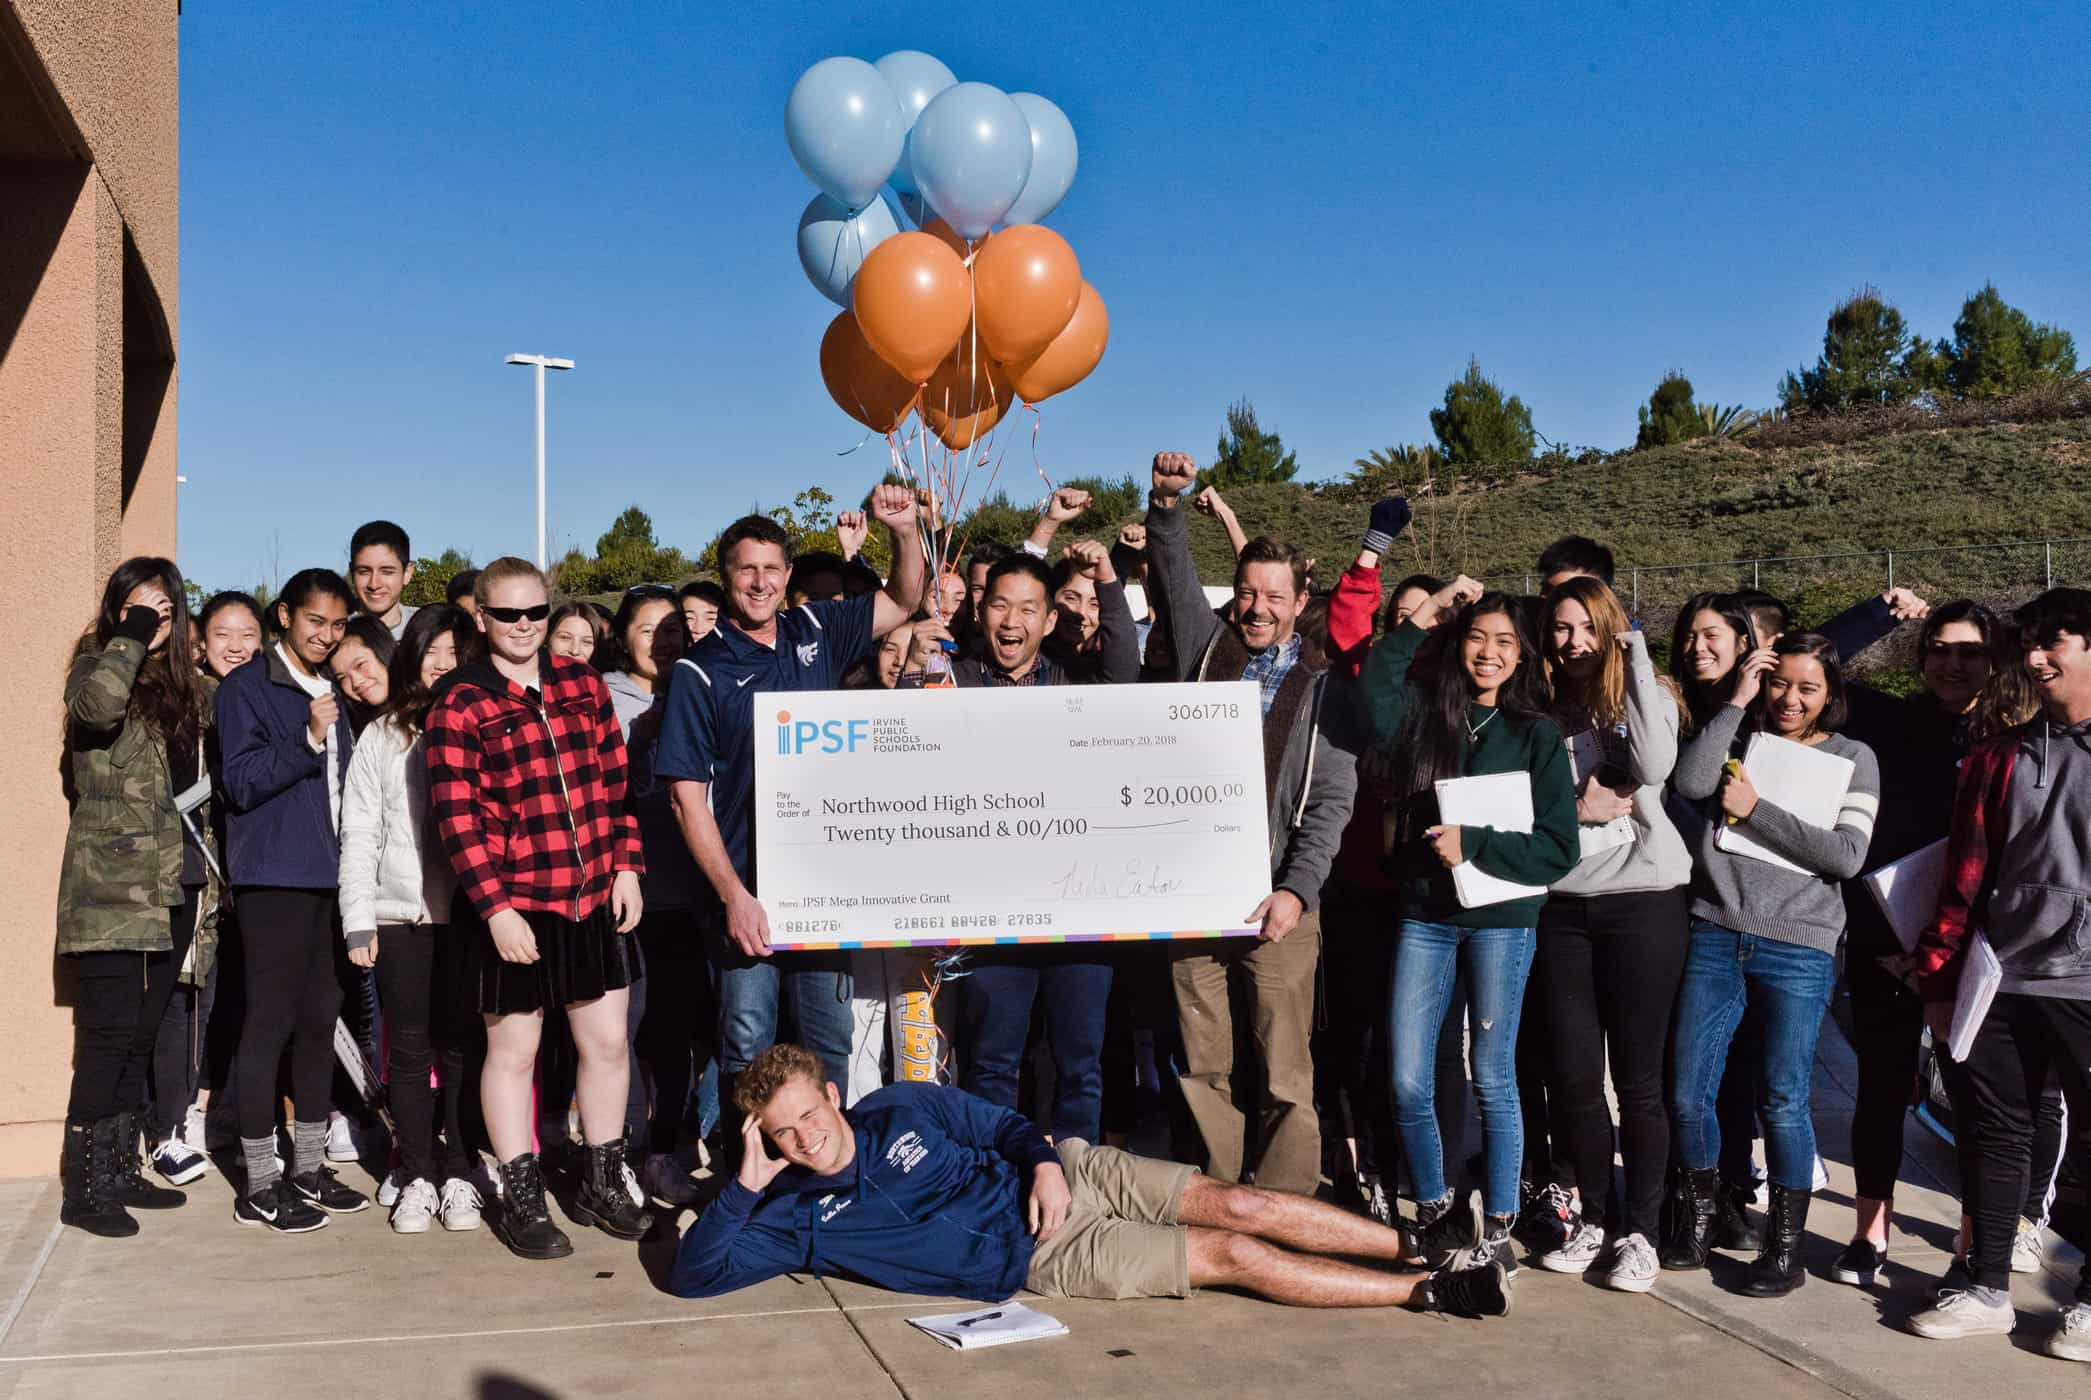 IPSF Innovative Grants Recipient Selected as OC Teacher of the Year